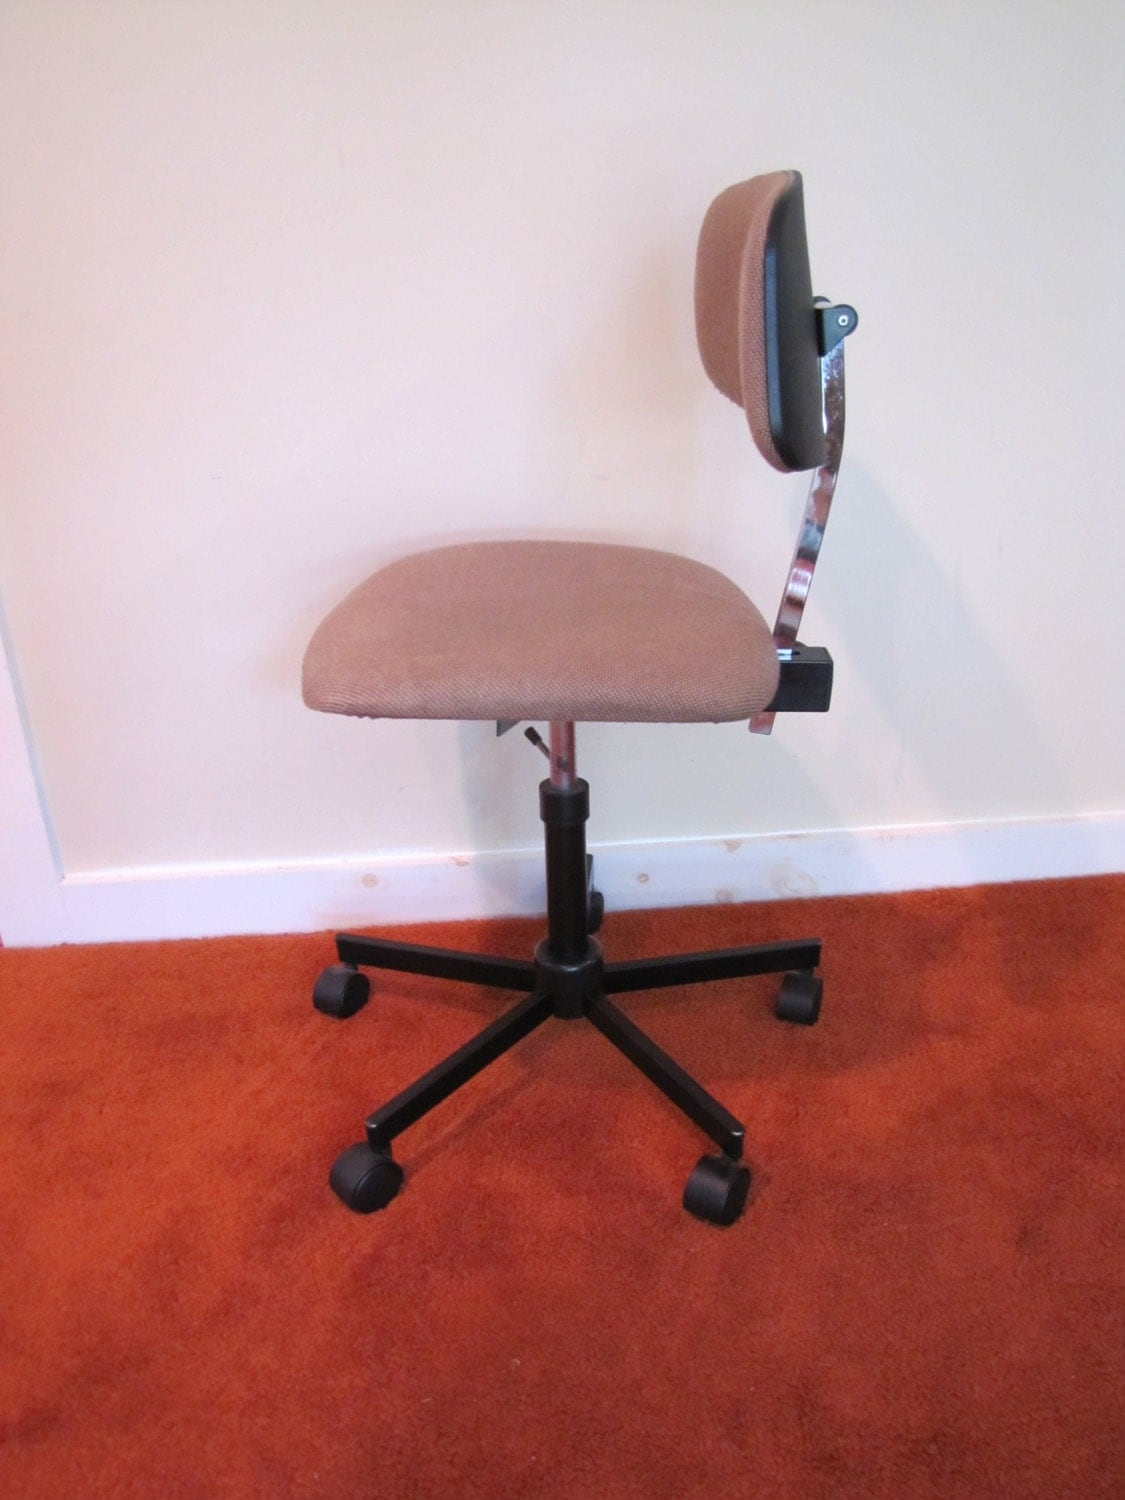 Rabami Stole Office Chair Rolling Desk Chair Made In